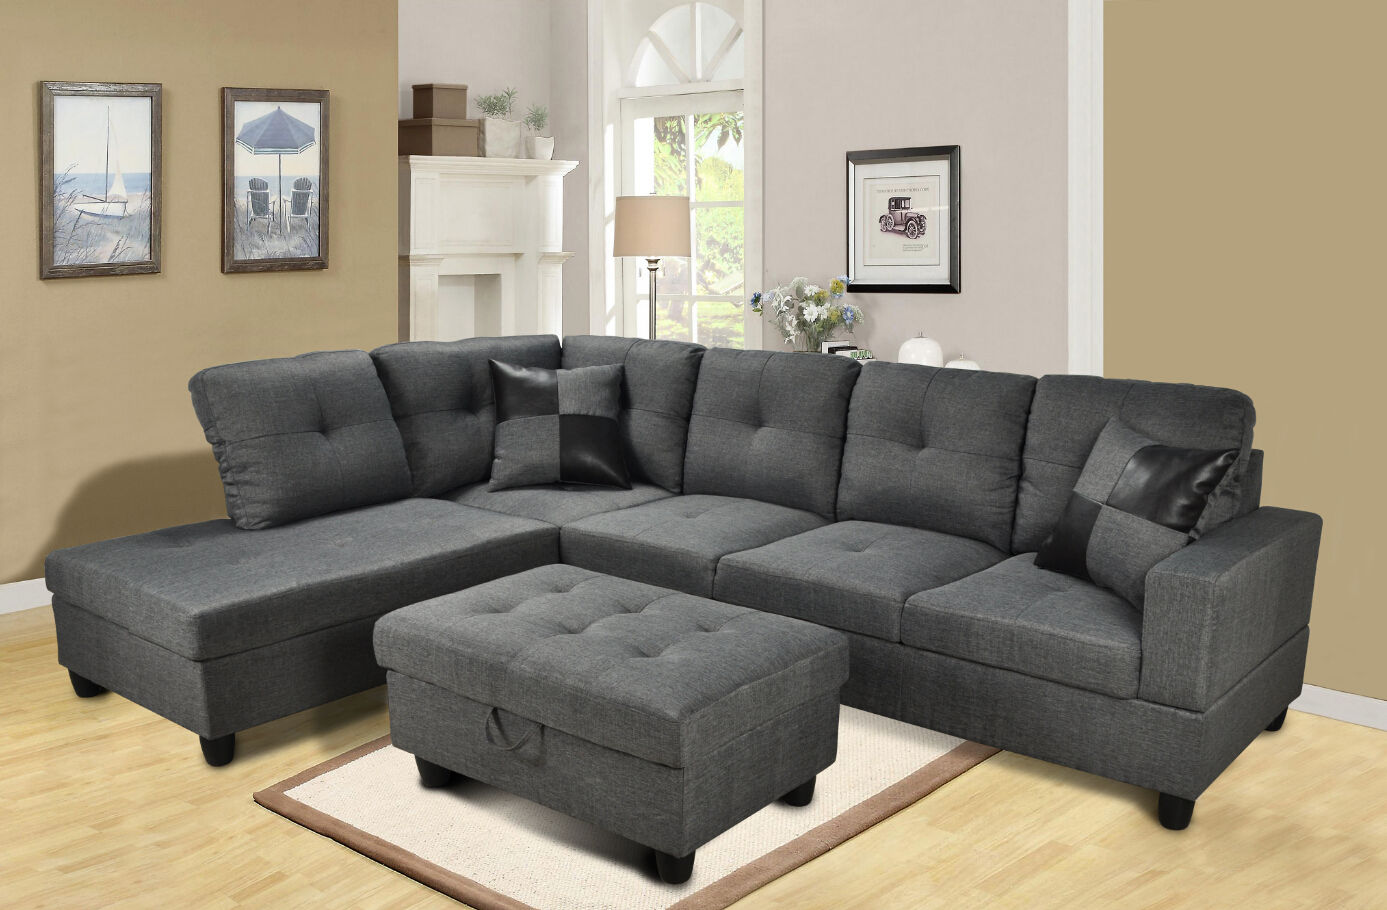 F108 Gray Microfiber Sectional With Storage Ottoman